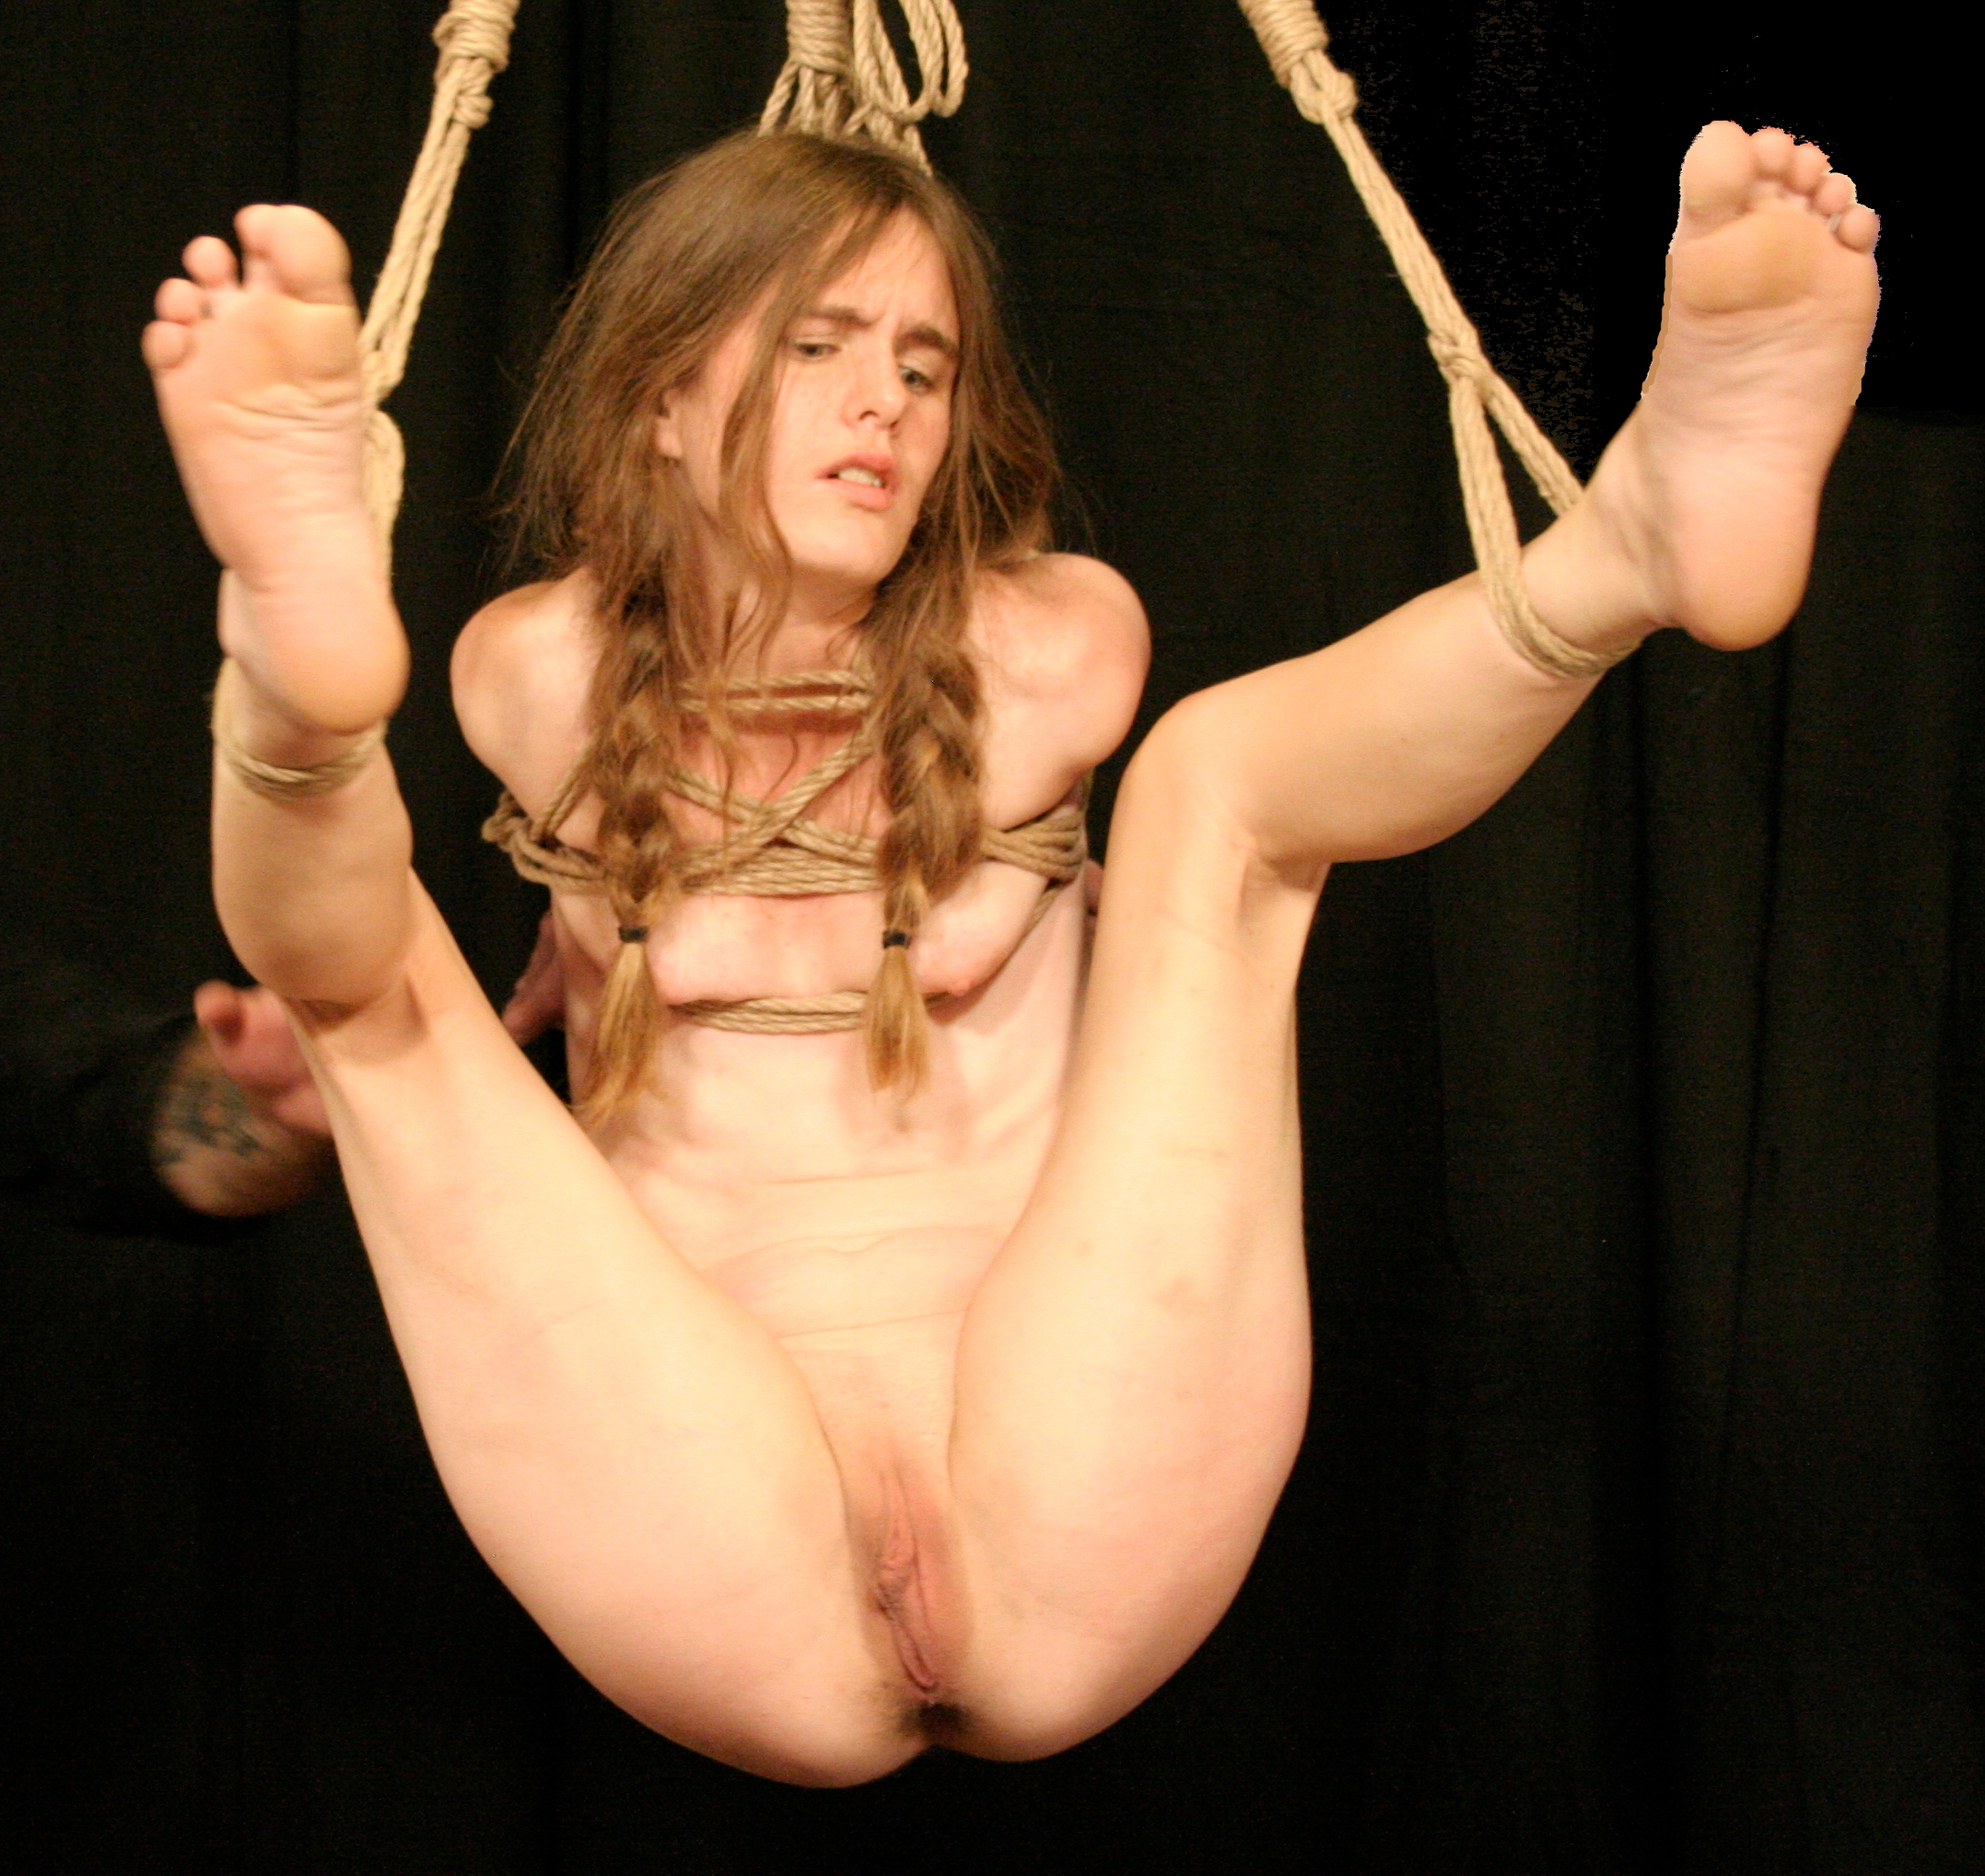 Nude bondage girl helpless thank